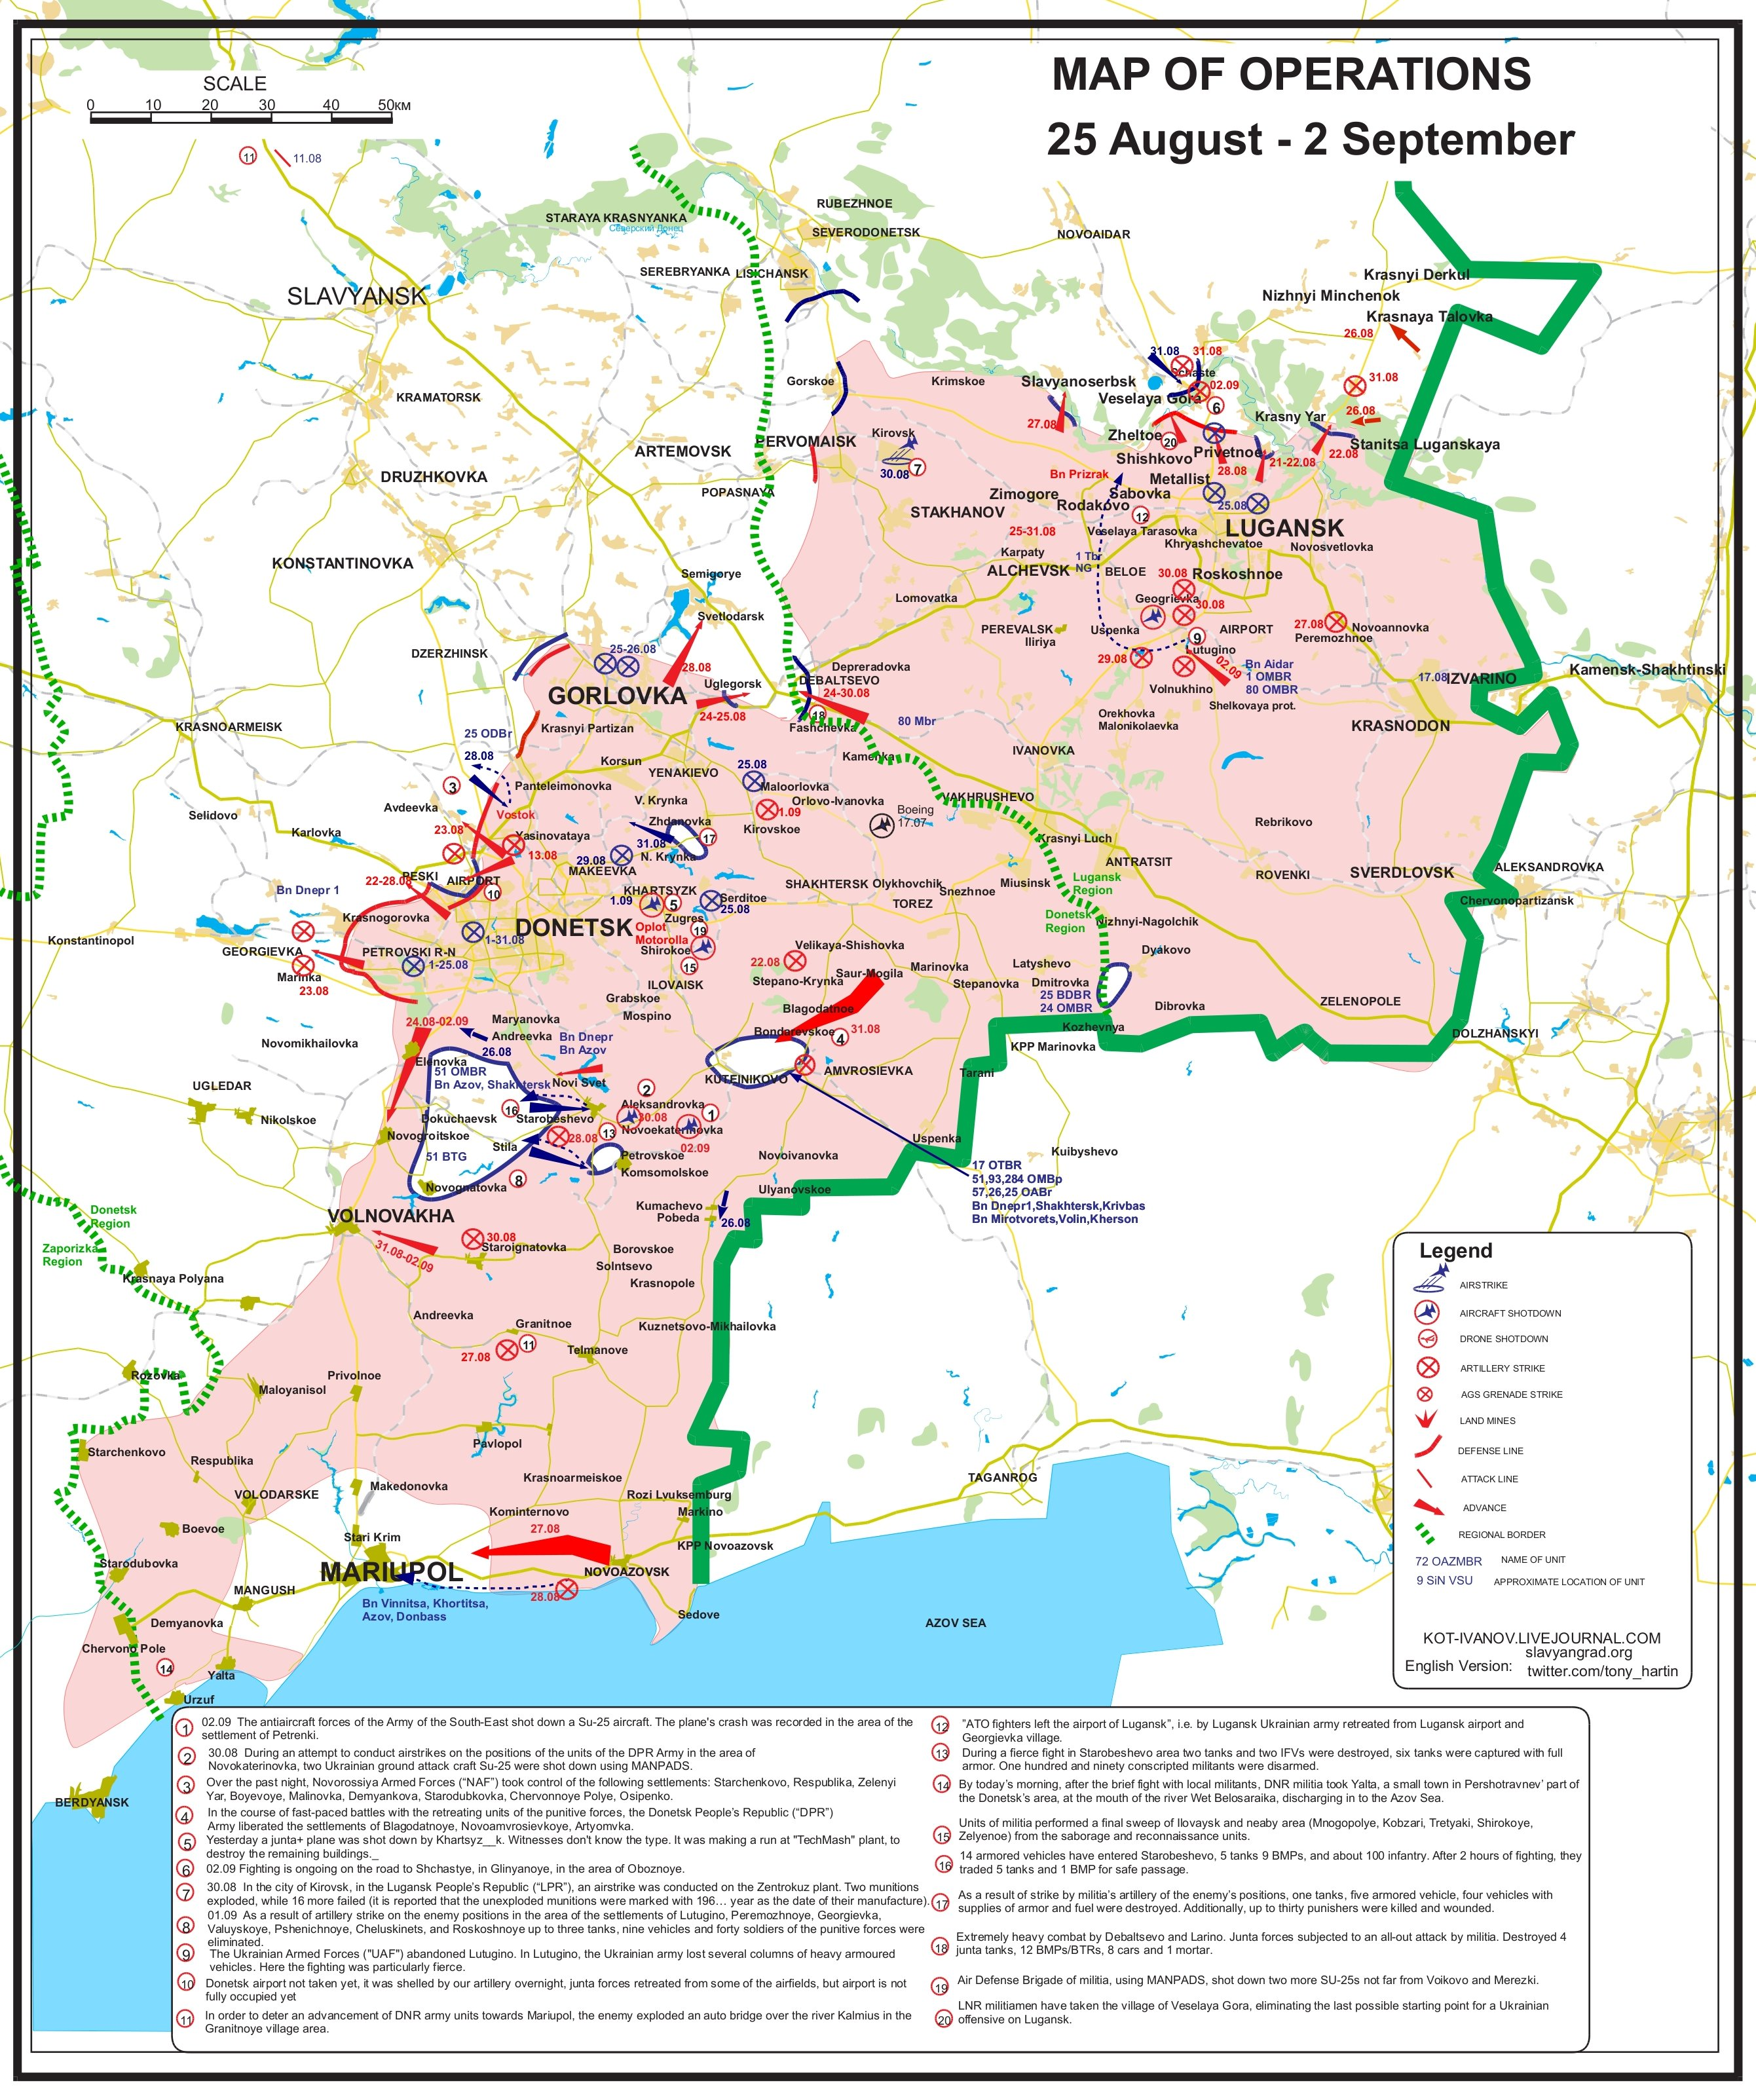 Ukraine military operations map Aug 2014 - Sep 2014